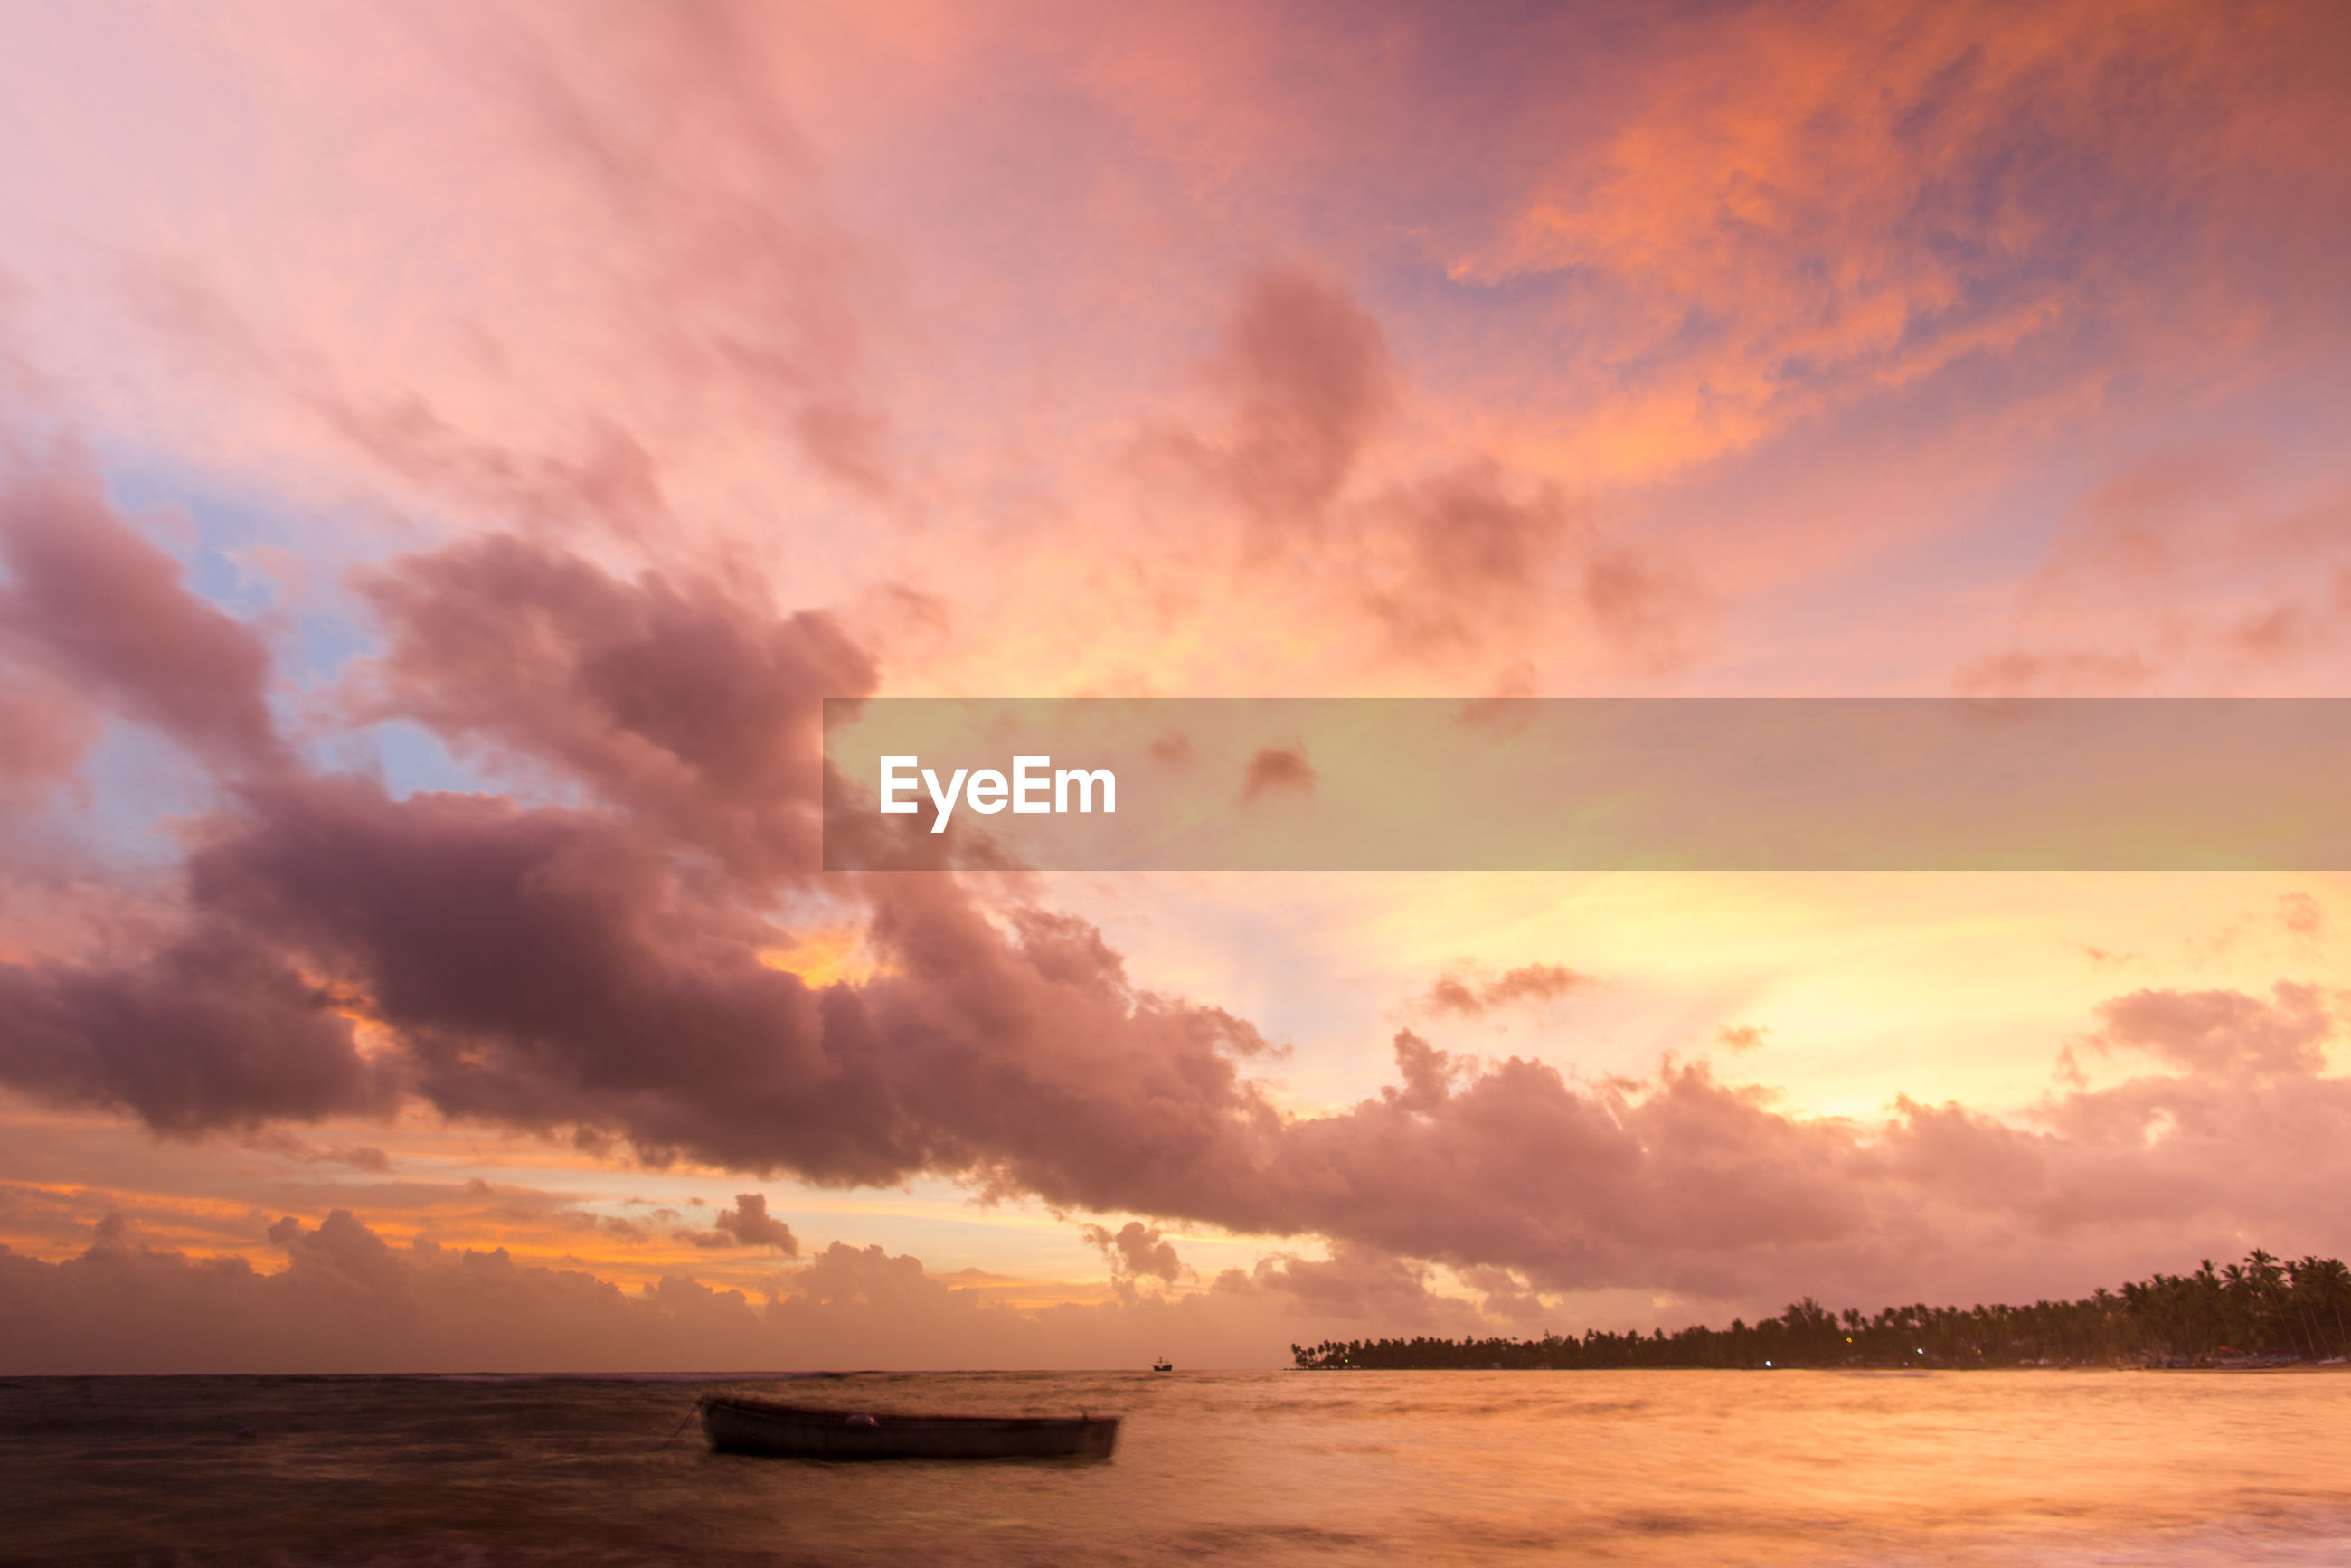 sunset, water, sea, scenics, tranquil scene, tranquility, waterfront, nautical vessel, calm, beauty in nature, ocean, sky, cloud, boat, transportation, idyllic, nature, orange color, majestic, dramatic sky, cloud - sky, moody sky, atmospheric mood, sun, cloudscape, no people, outline, remote, multi colored, cloudy